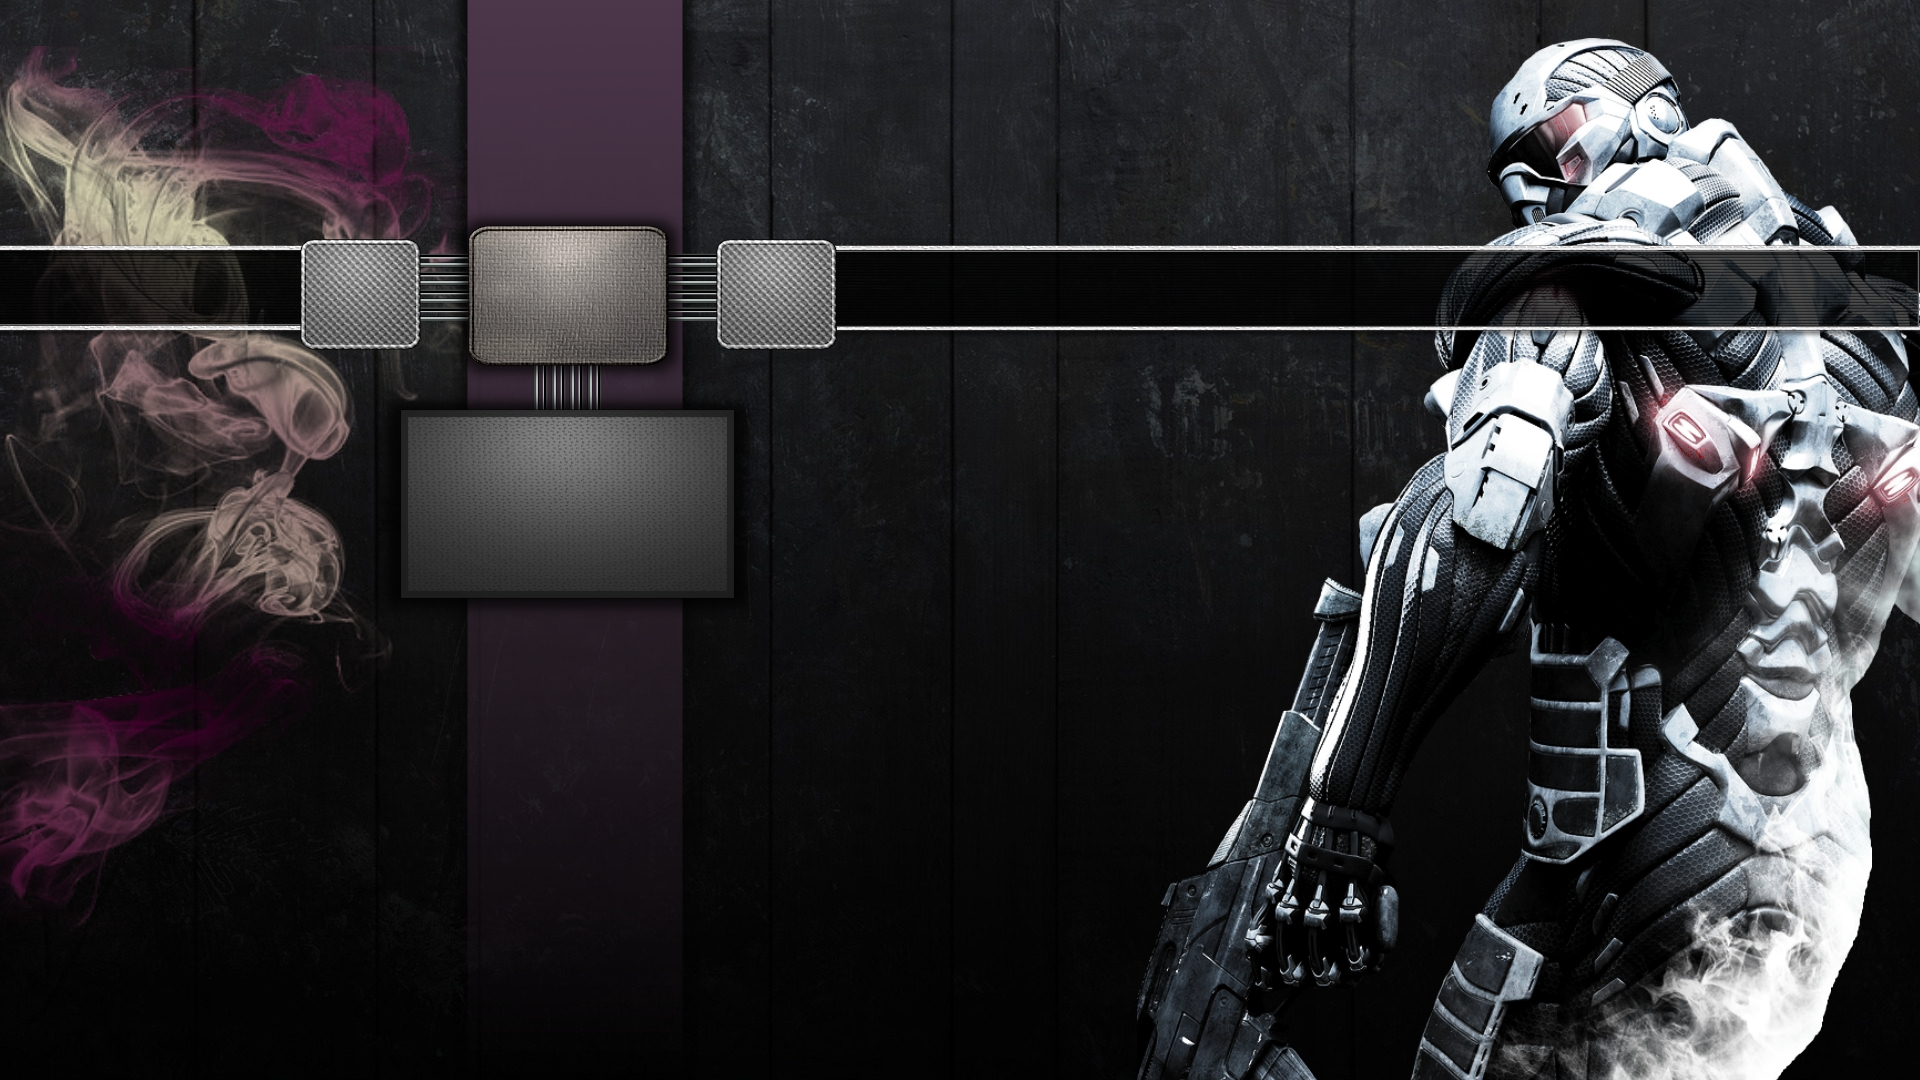 Wallpaper For Ps3 Free Posted By Ethan Walker